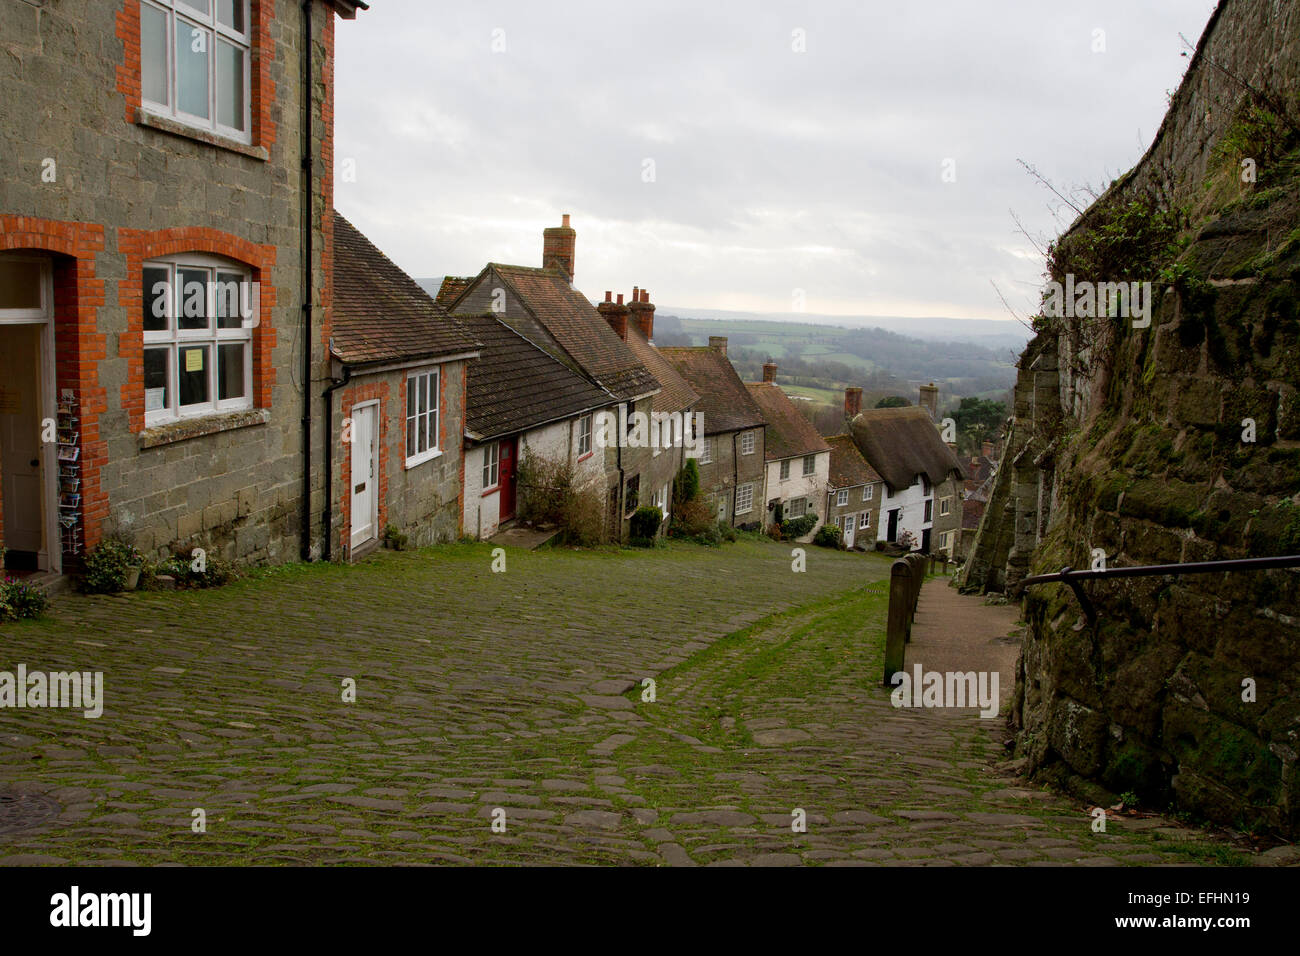 View at the top of Gold Hill, famous cobbled street in Shaftesbury, Dorset, England, looking downhill and to countryside - Stock Image